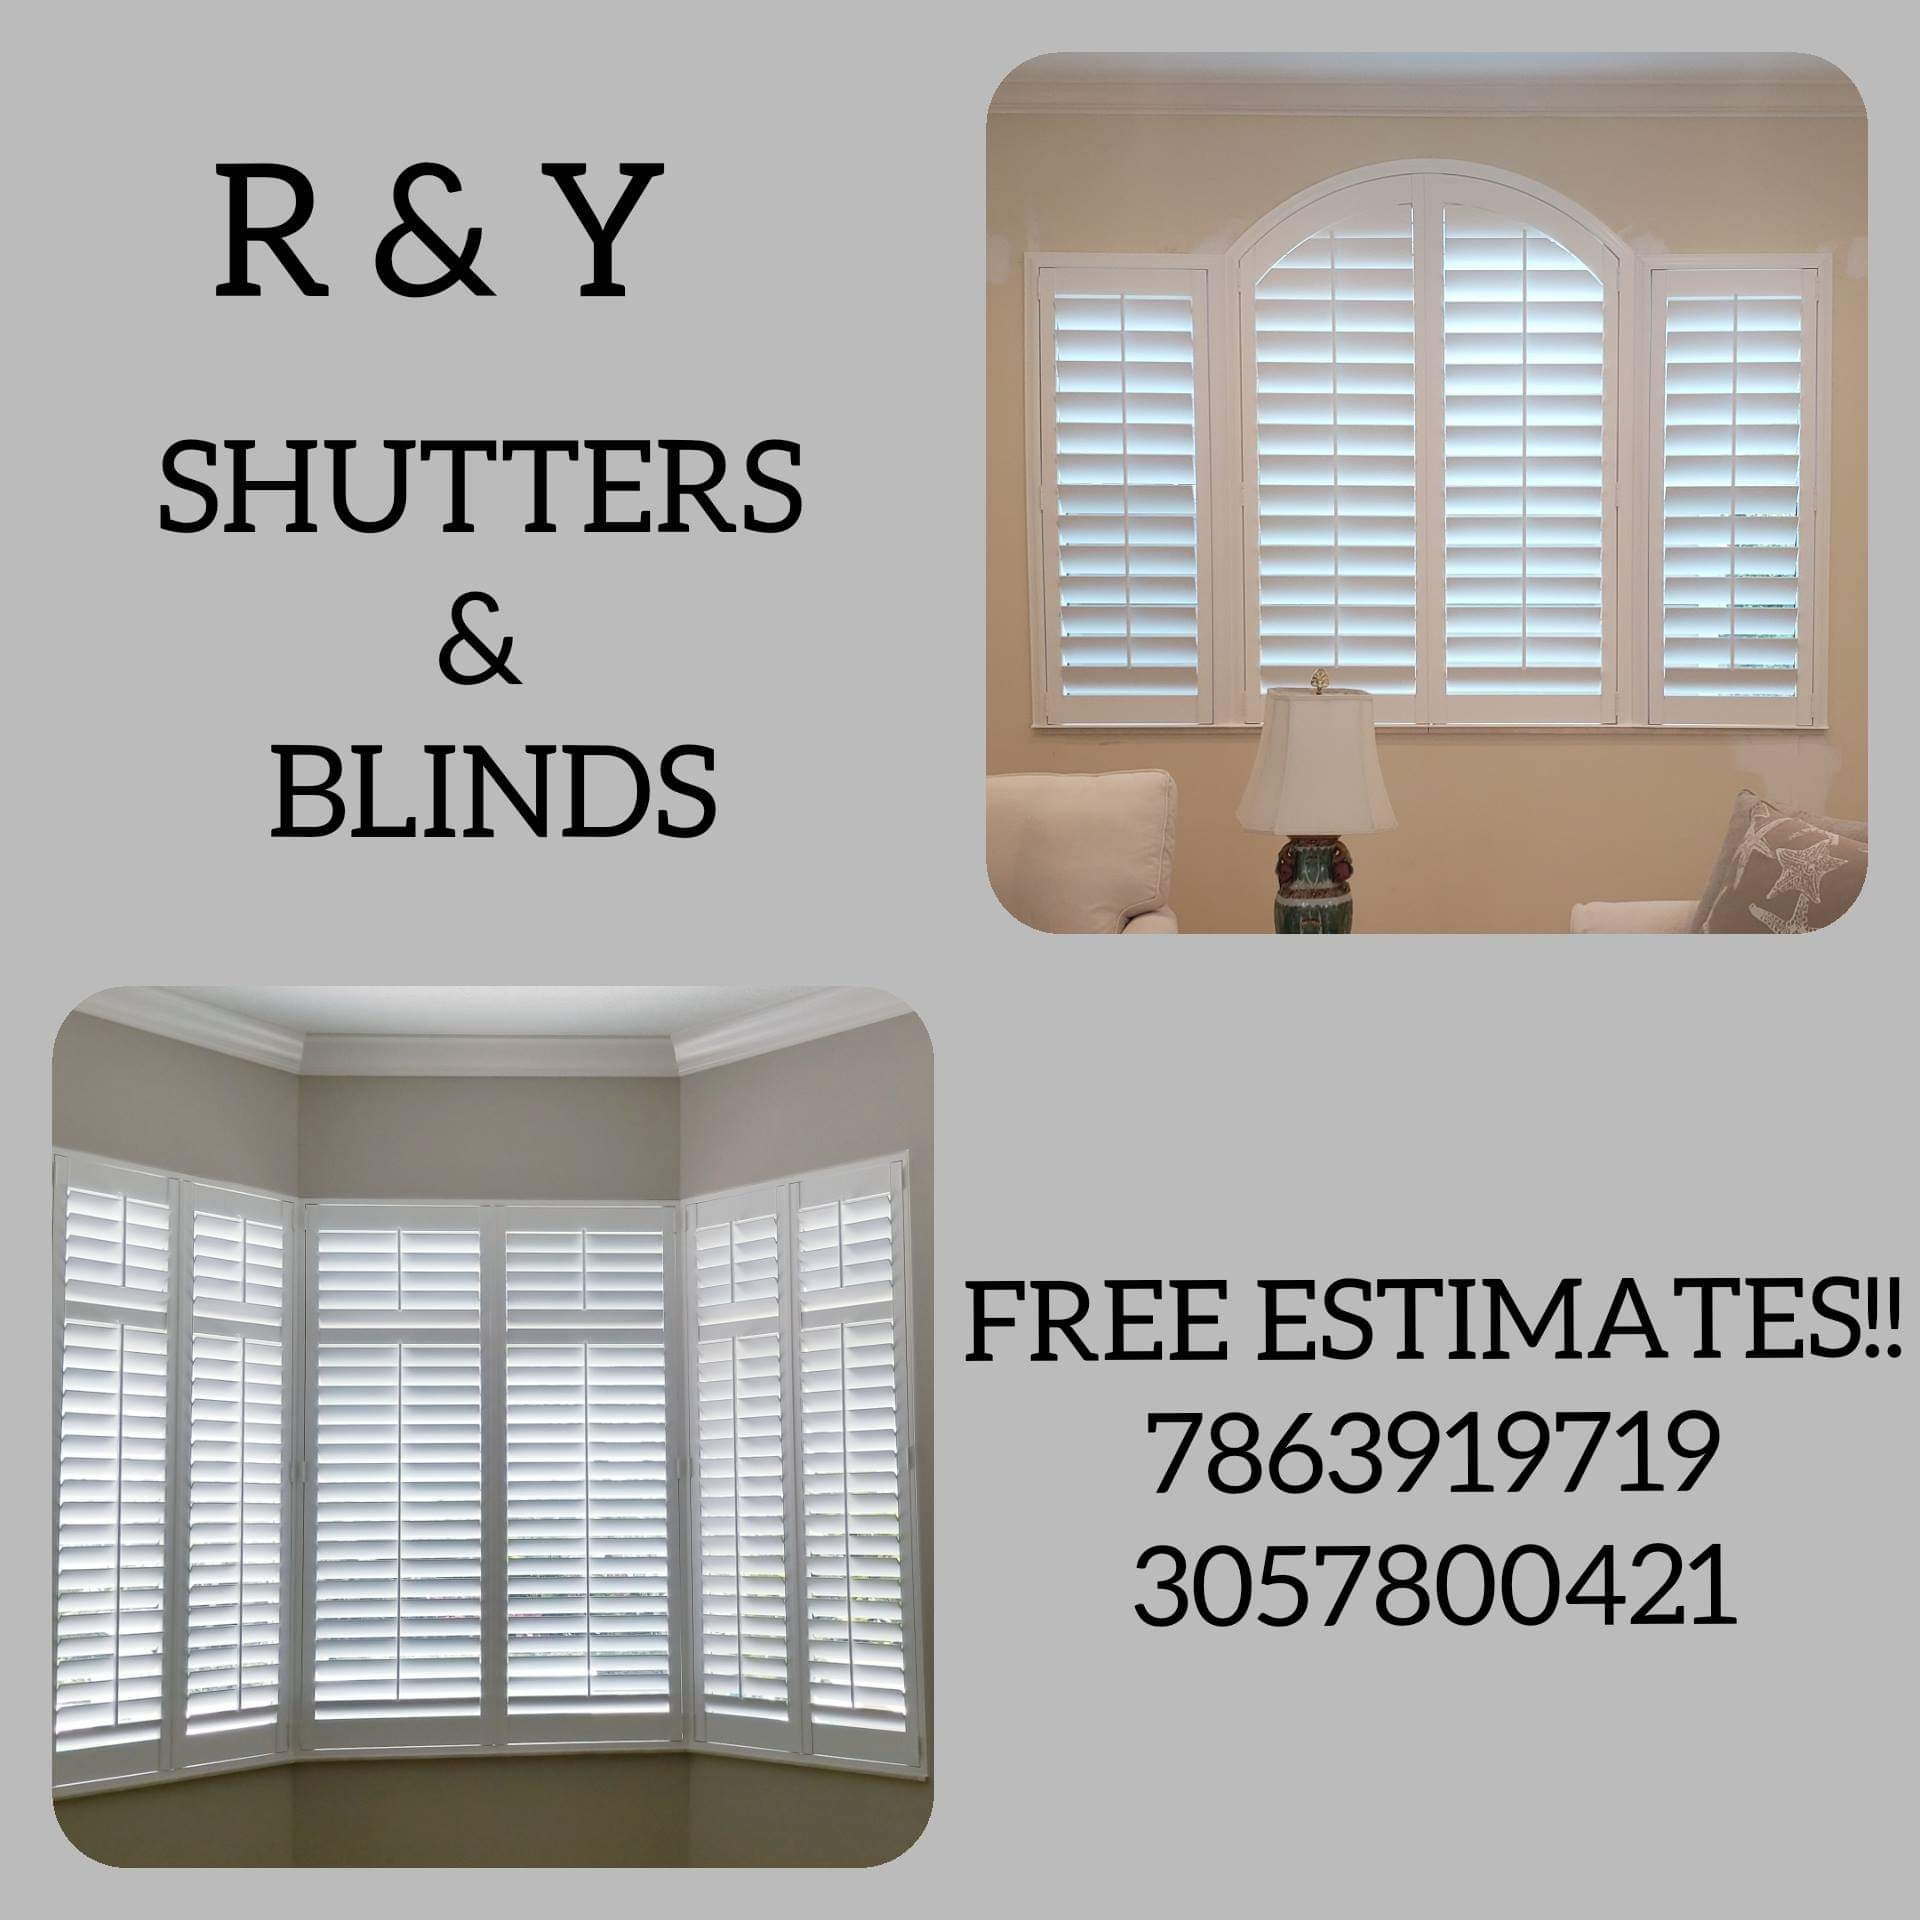 R & Y Shutters & Blinds Corp